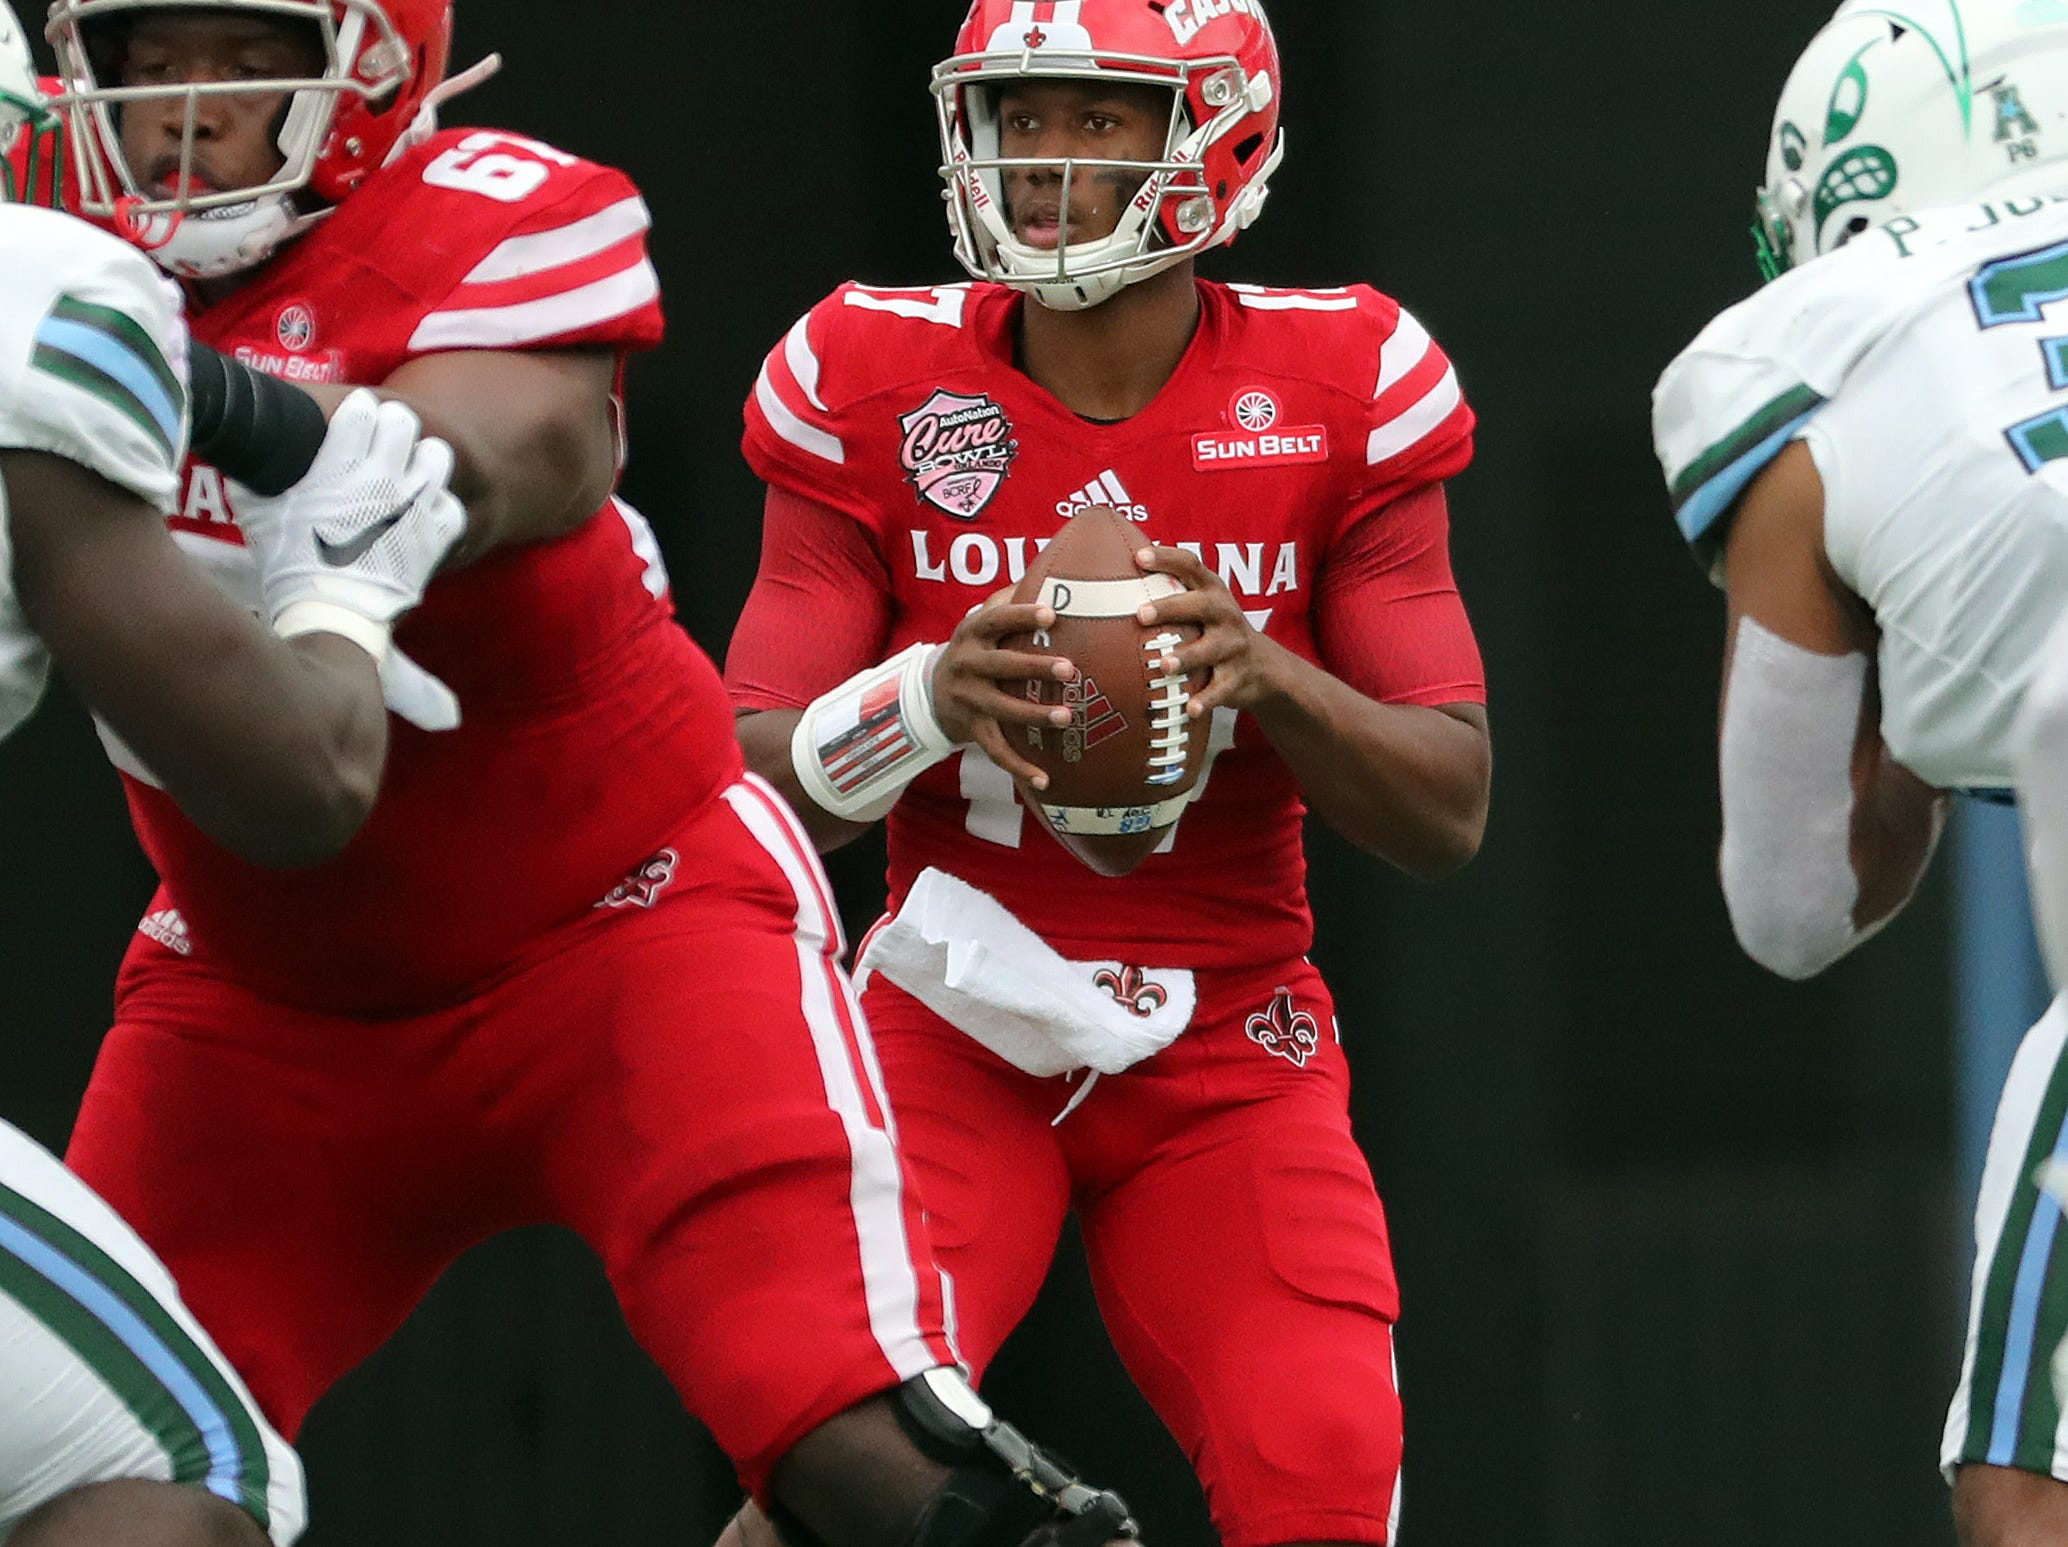 Dec 15, 2018; Orlando, FL, USA; Louisiana-Lafayette Ragin Cajuns quarterback Levi Lewis (17) prepares to throw the ball during the first half at Camping World Stadium. Mandatory Credit: Kim Klement-USA TODAY Sports